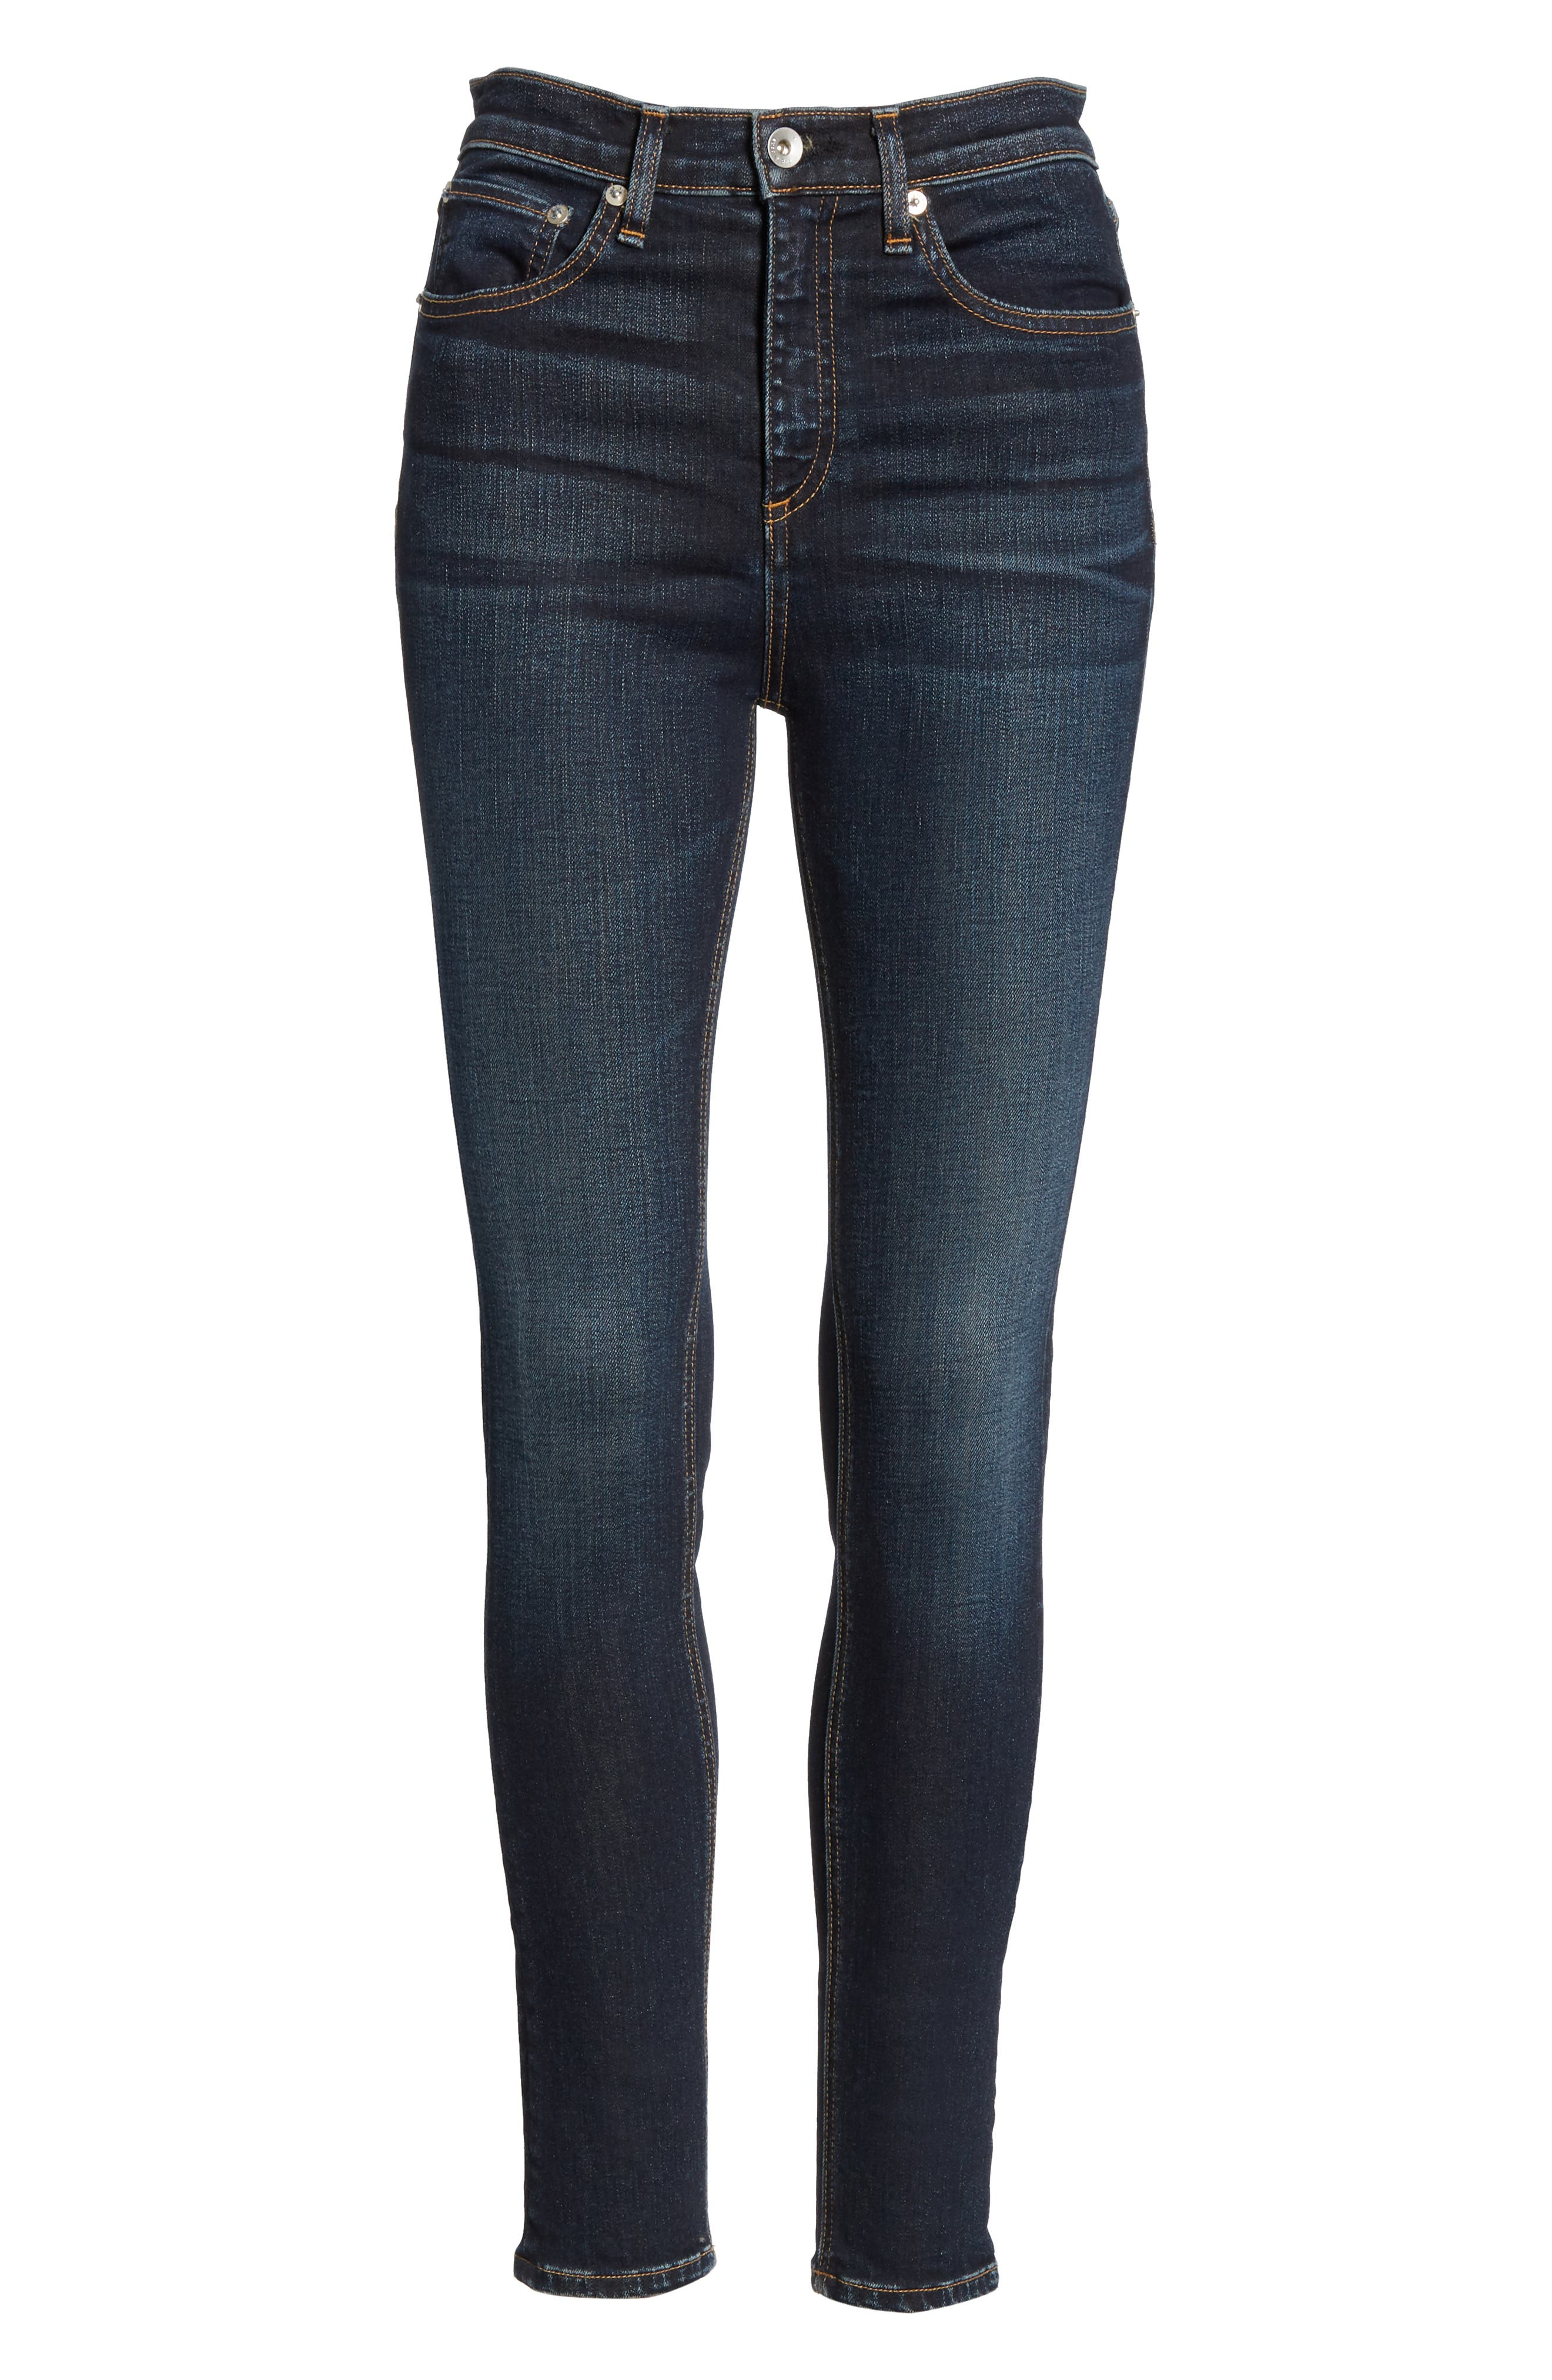 JEAN High Waist Ankle Skinny Jeans,                             Alternate thumbnail 7, color,                             RIVERDALE